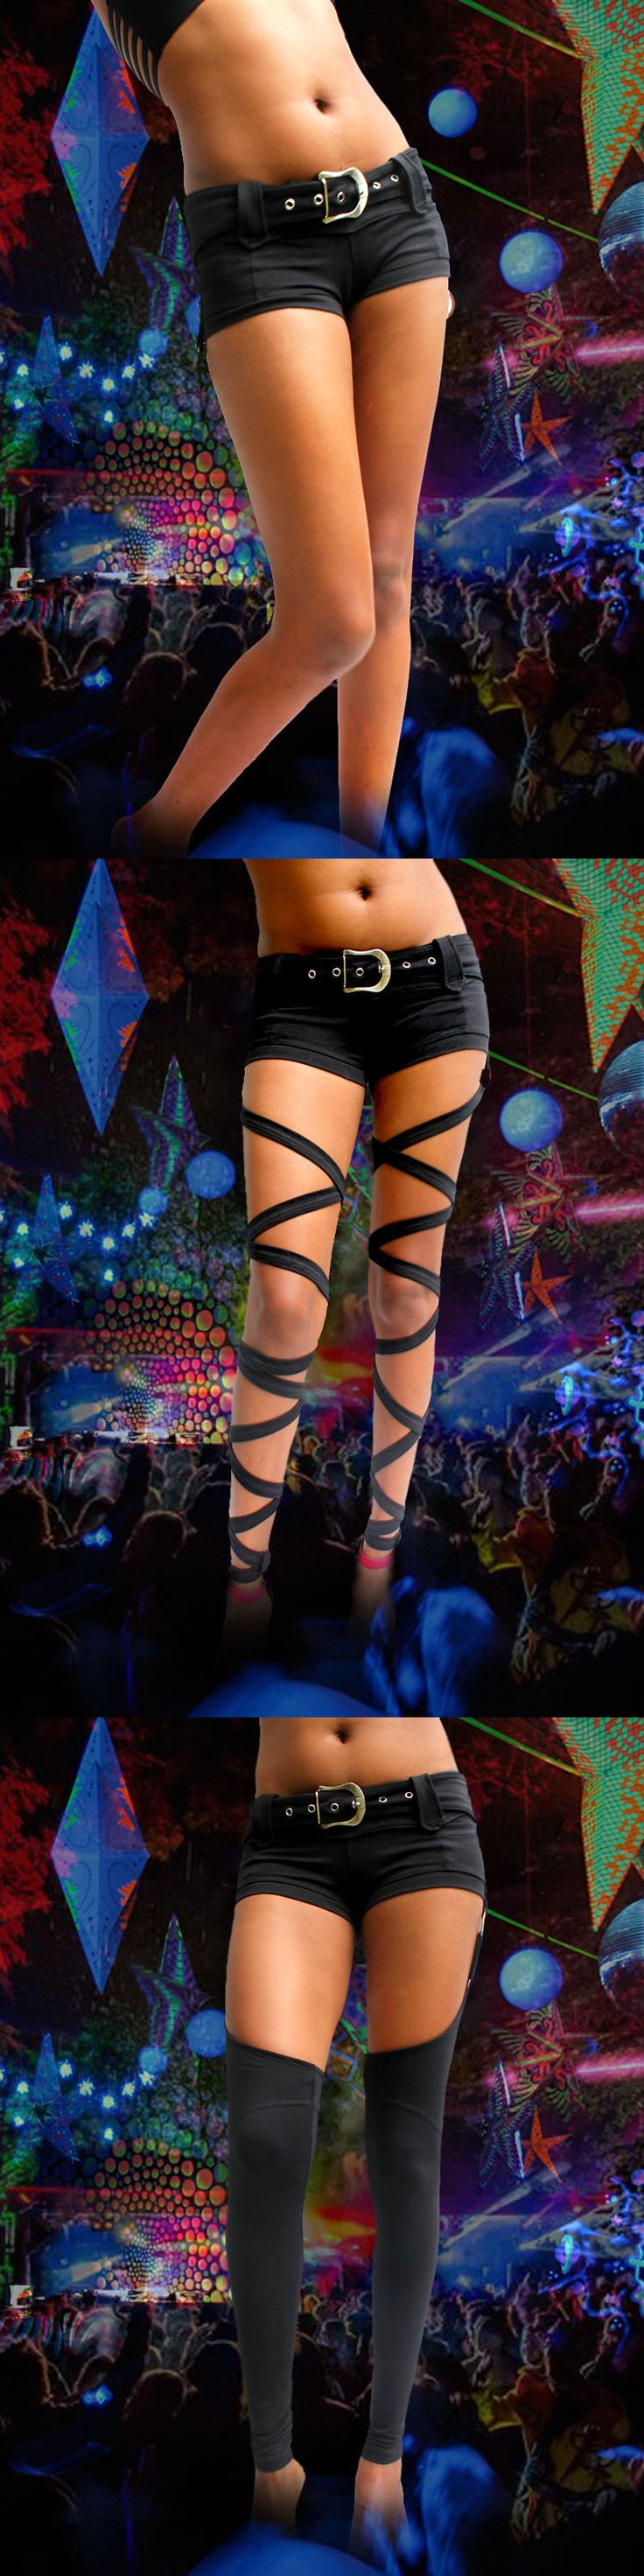 1 outfit - 3 styles ... gogo belly dancer hot pants rave party festivals